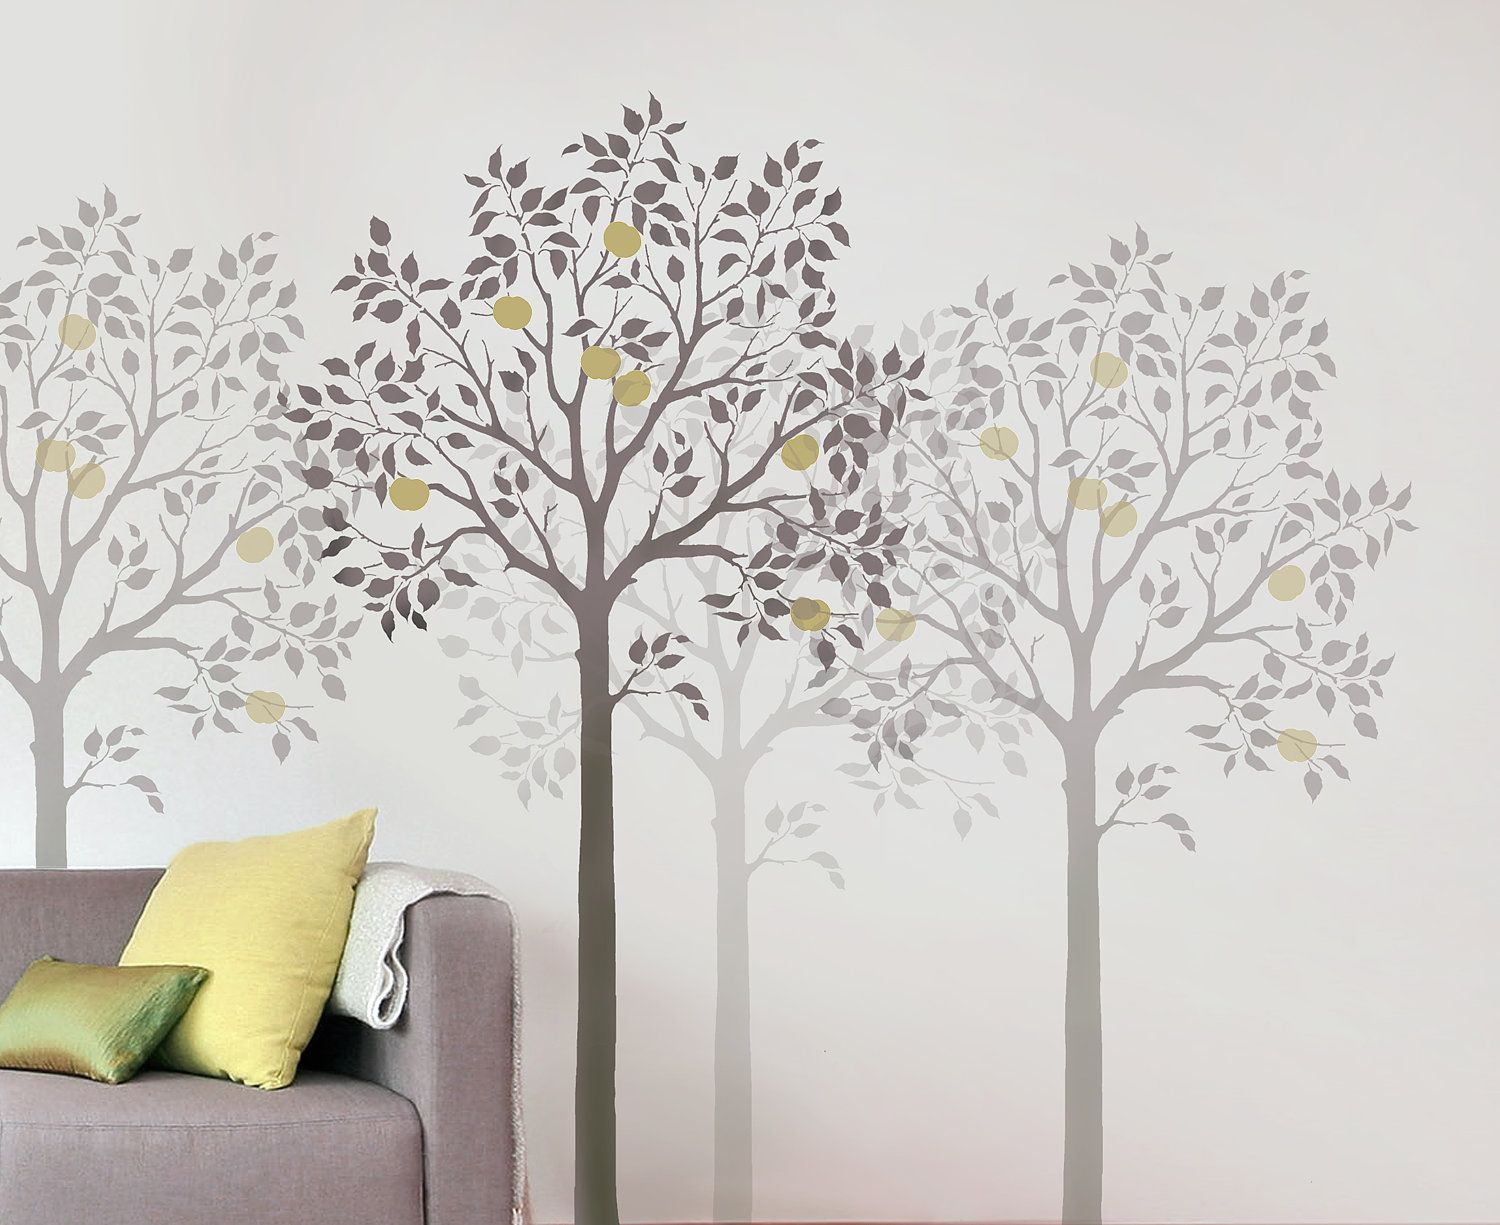 Tree stencils for walls uk images home wall decoration ideas large fruit tree stencil reusable wall stencils for diy decor large fruit tree stencil reusable wall amipublicfo Gallery